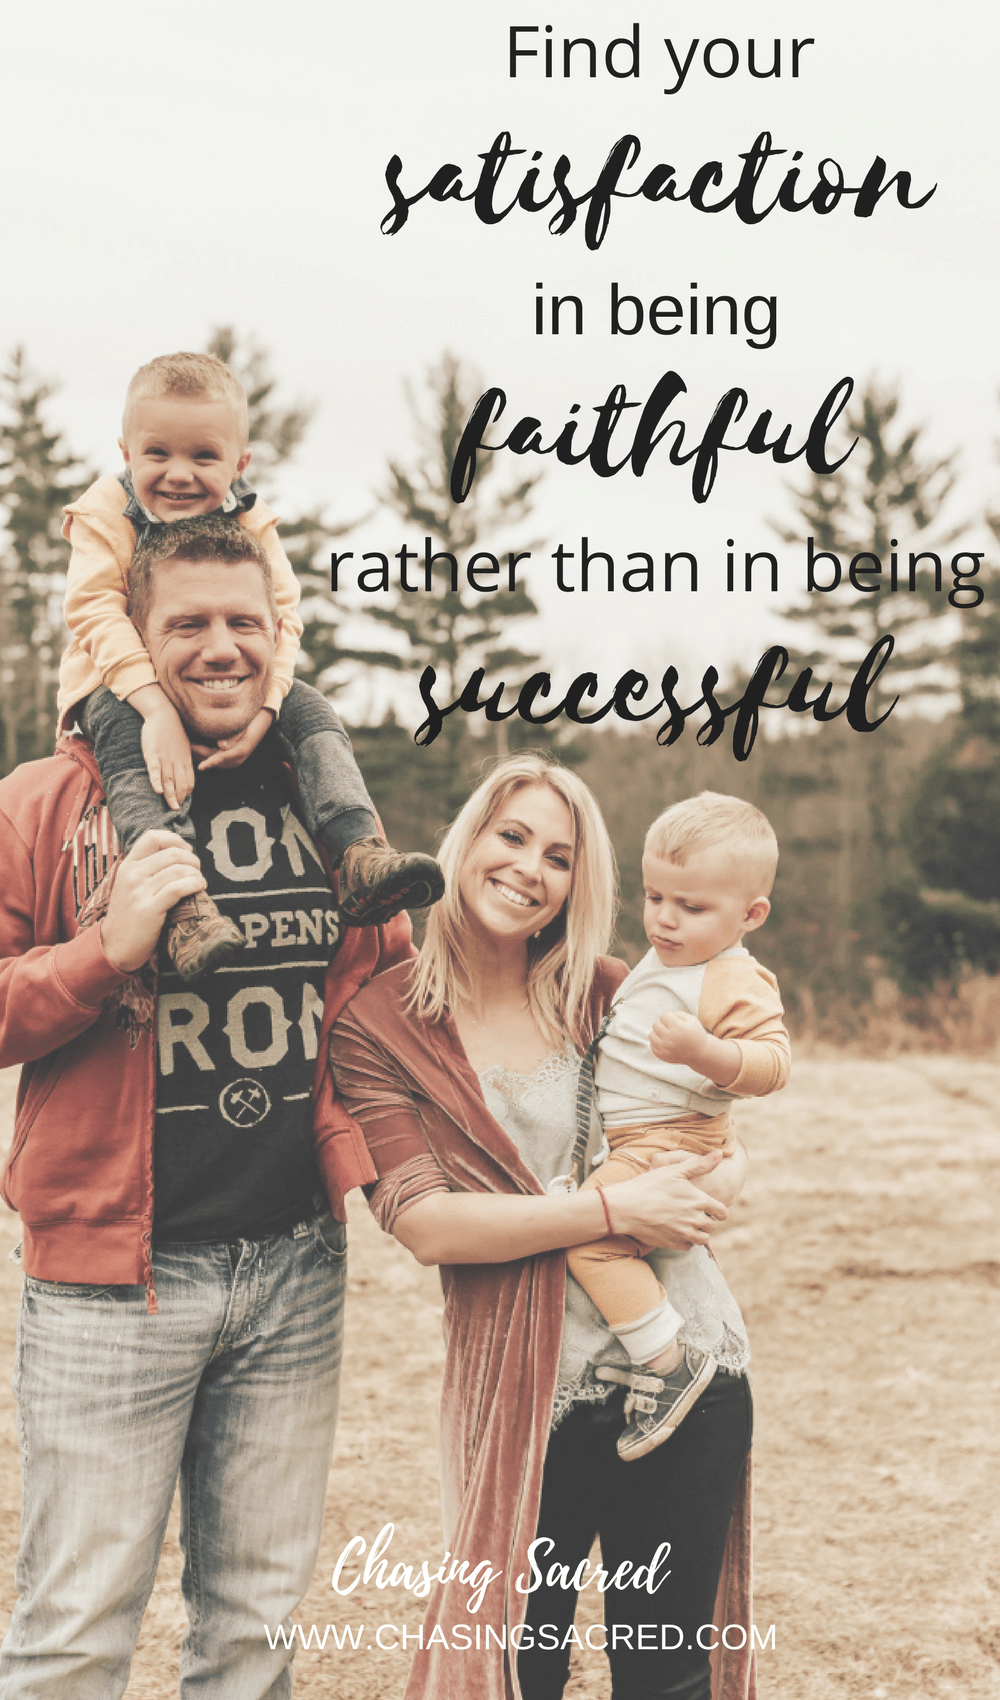 Find your satisfaction in being faithful rather than being successful